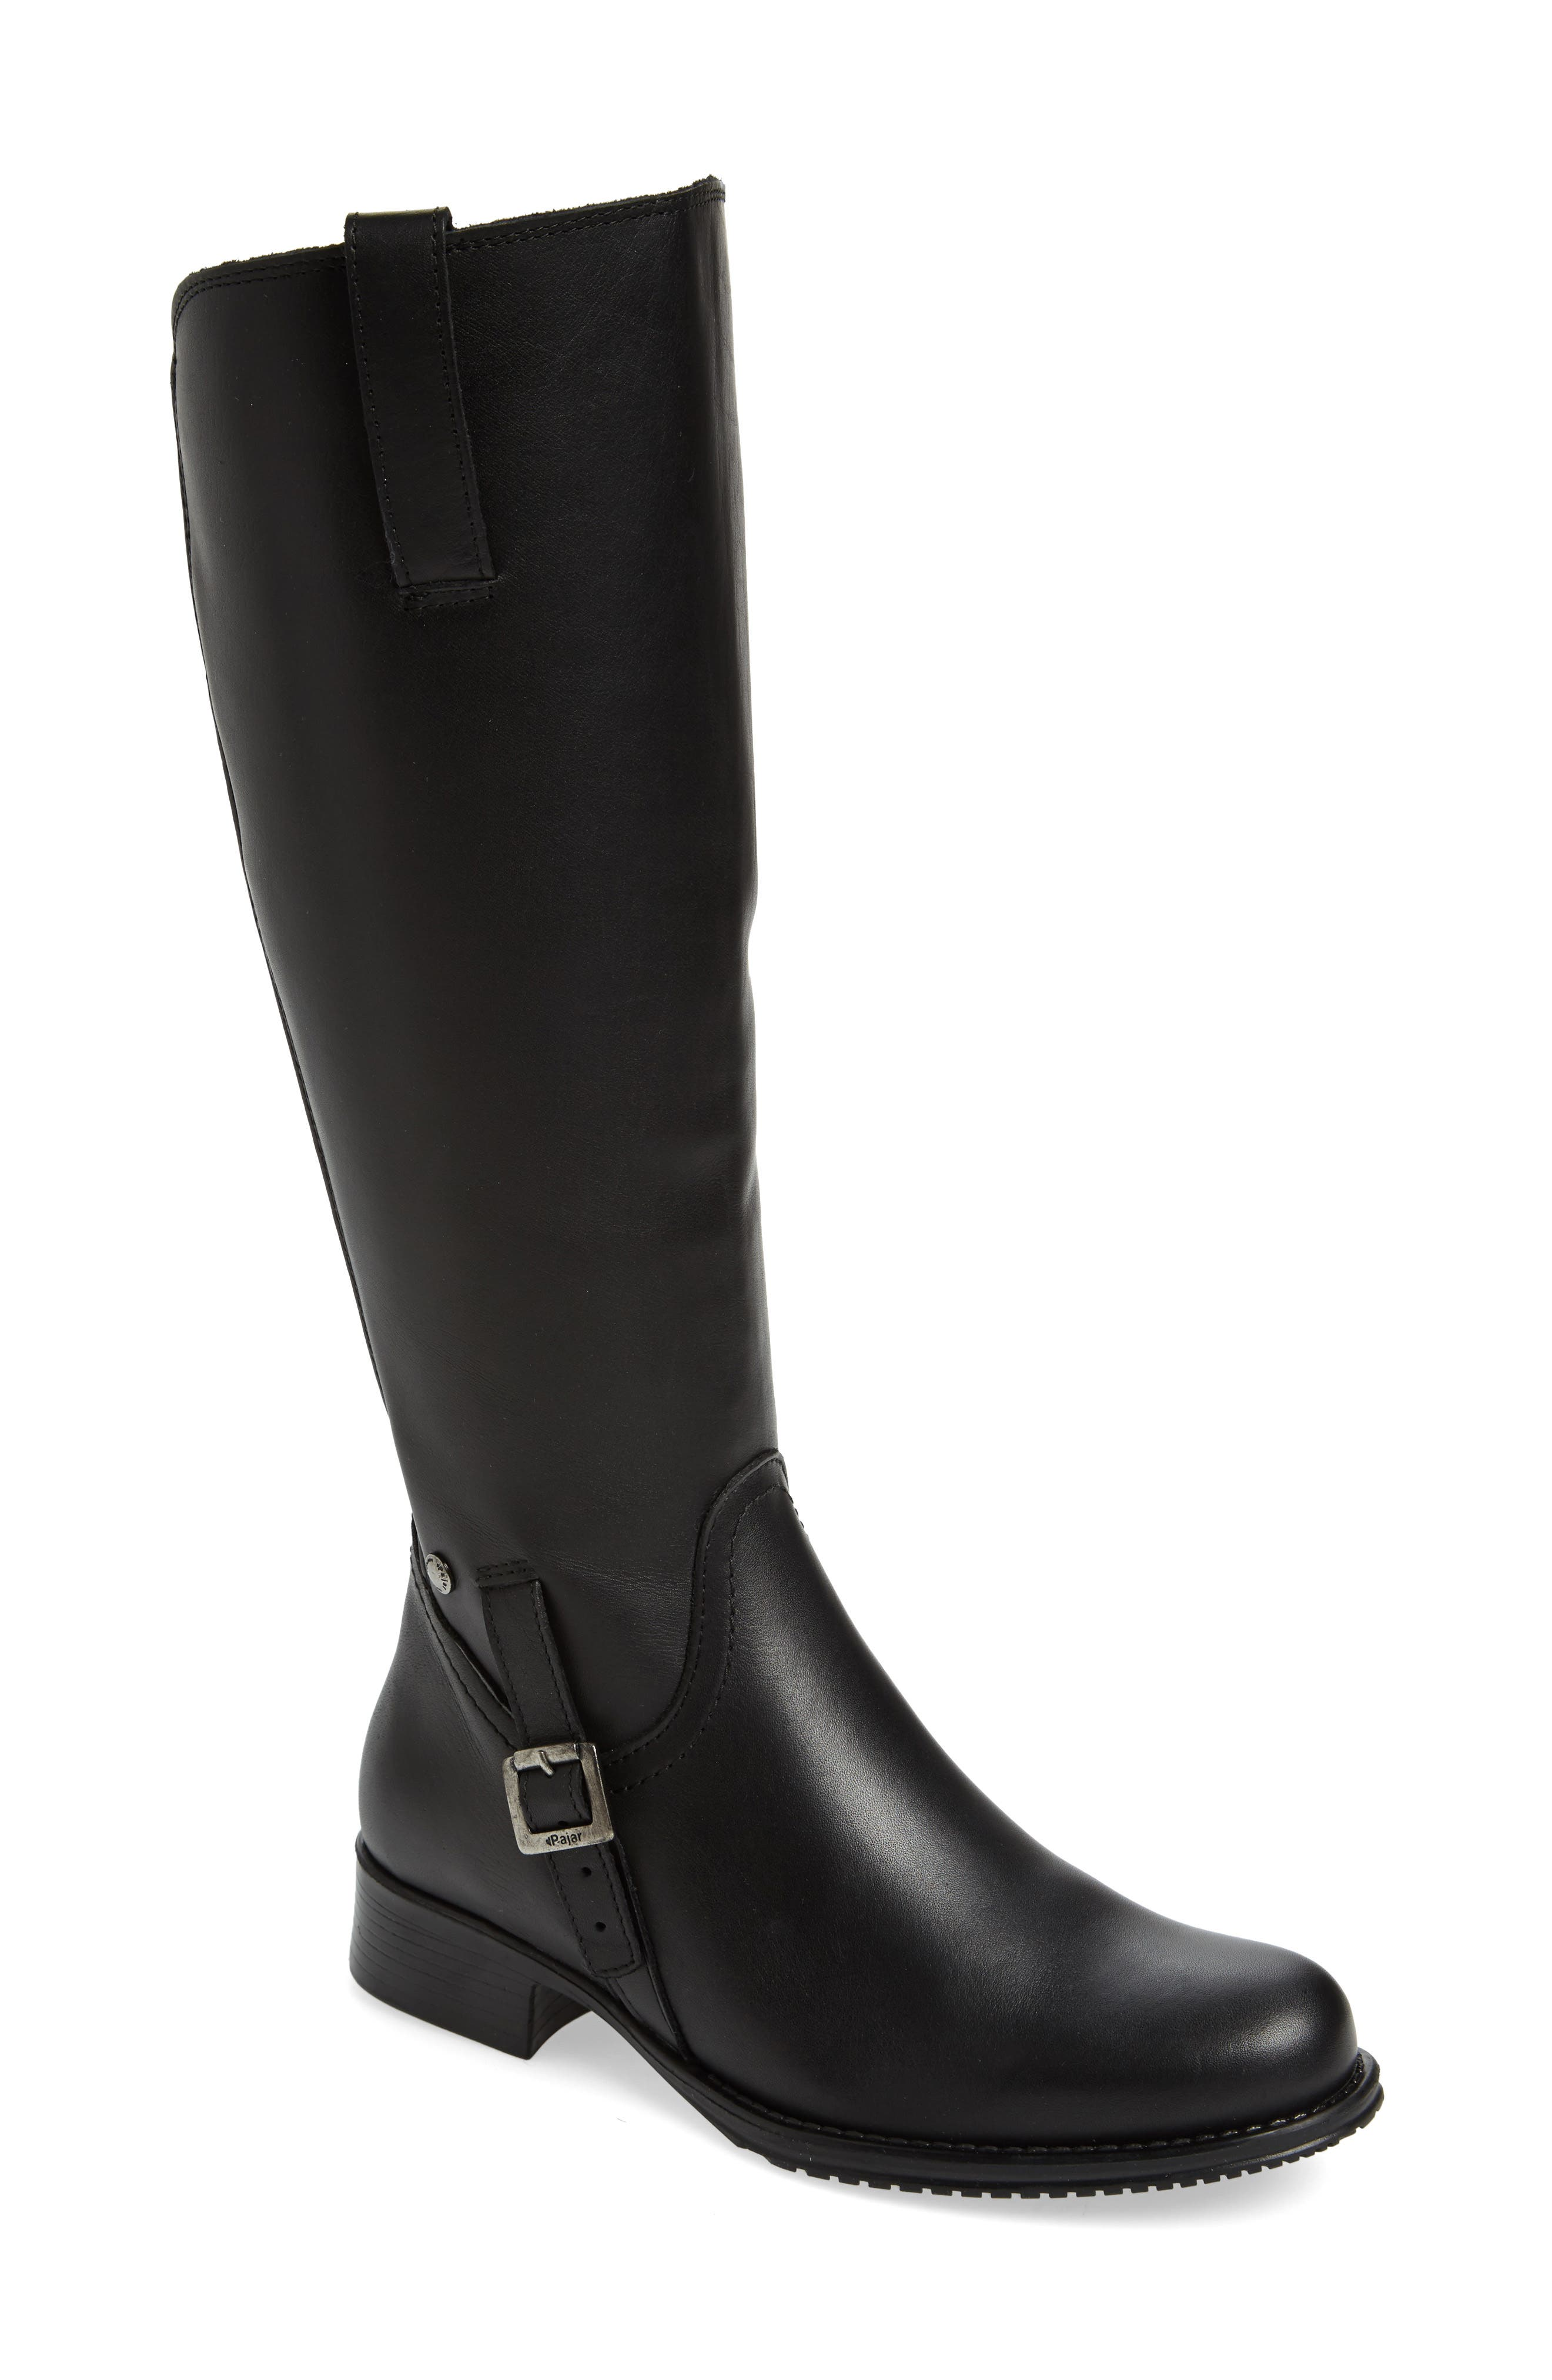 Dogueno Waterproof Boot,                         Main,                         color, Black Leather